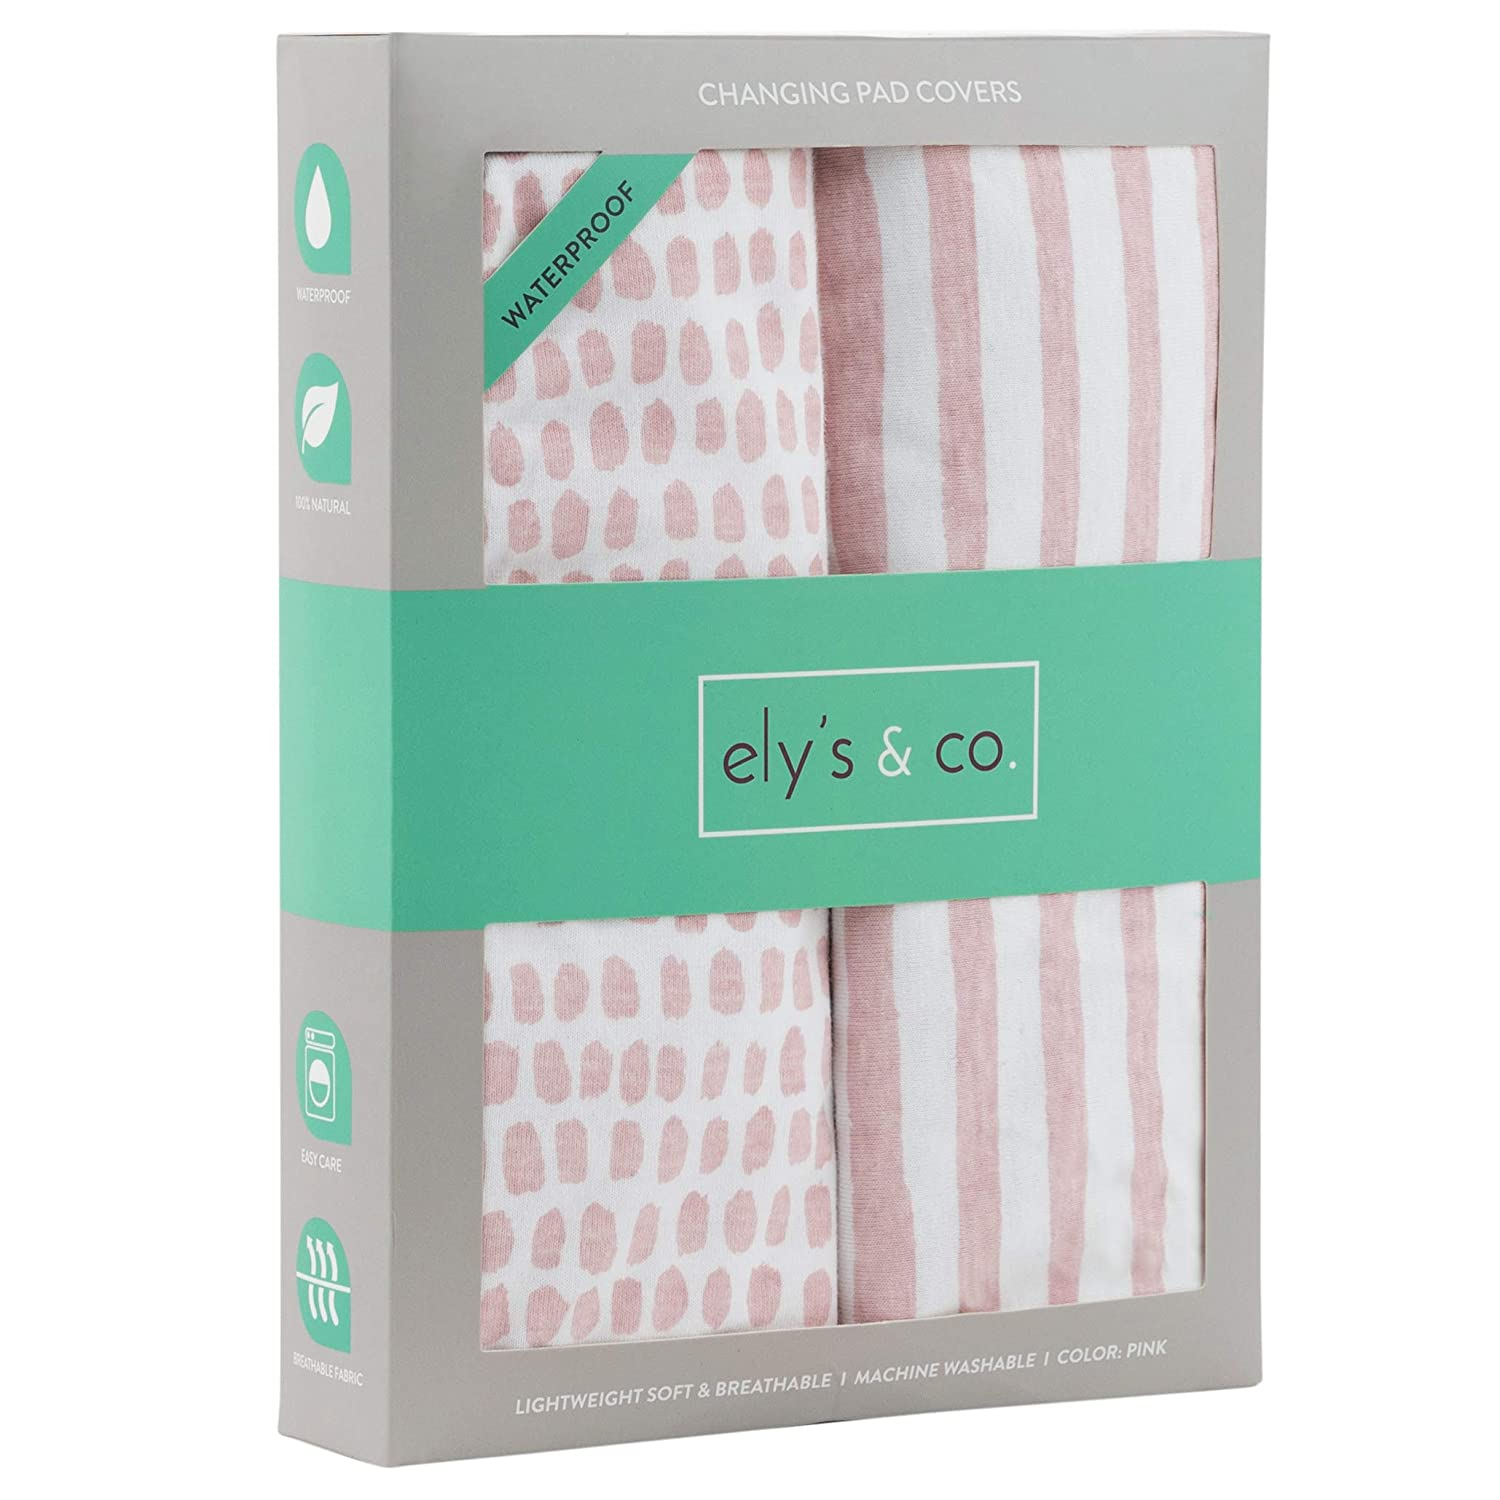 Cradle Sheet Set by Elys /& Co no Need for Changing Pad Liner Mauve Pink Splash /& Stripe 2 Pack for Baby Girl Waterproof Changing Pad Cover Set